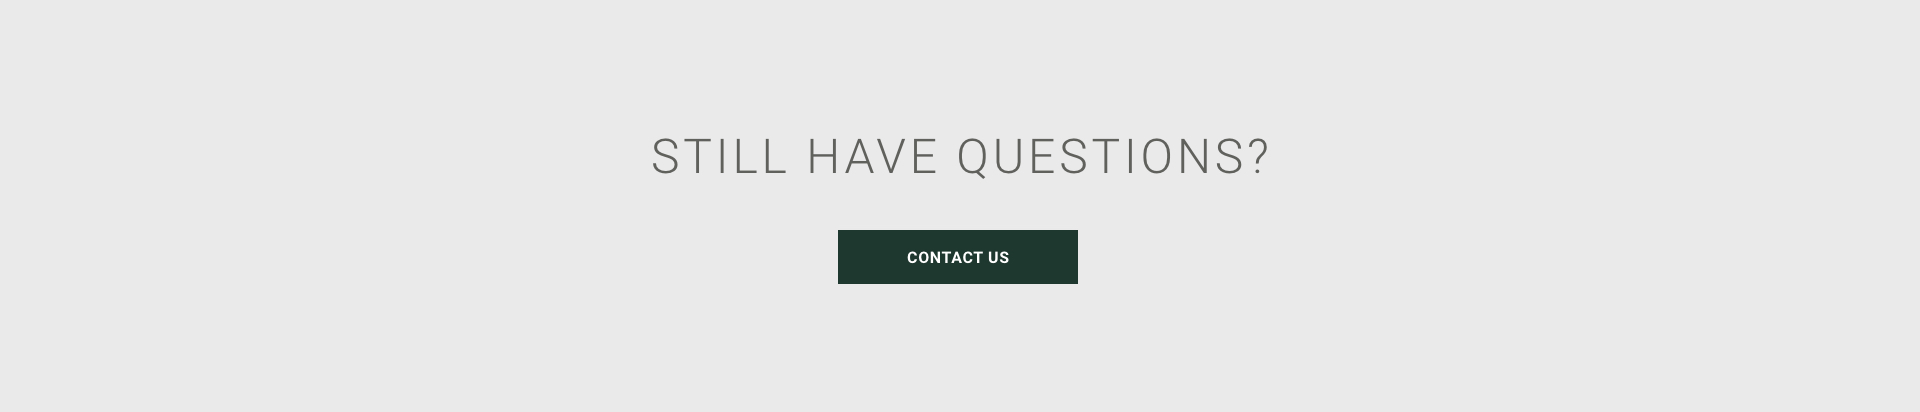 Still Have Questions? Contact Us